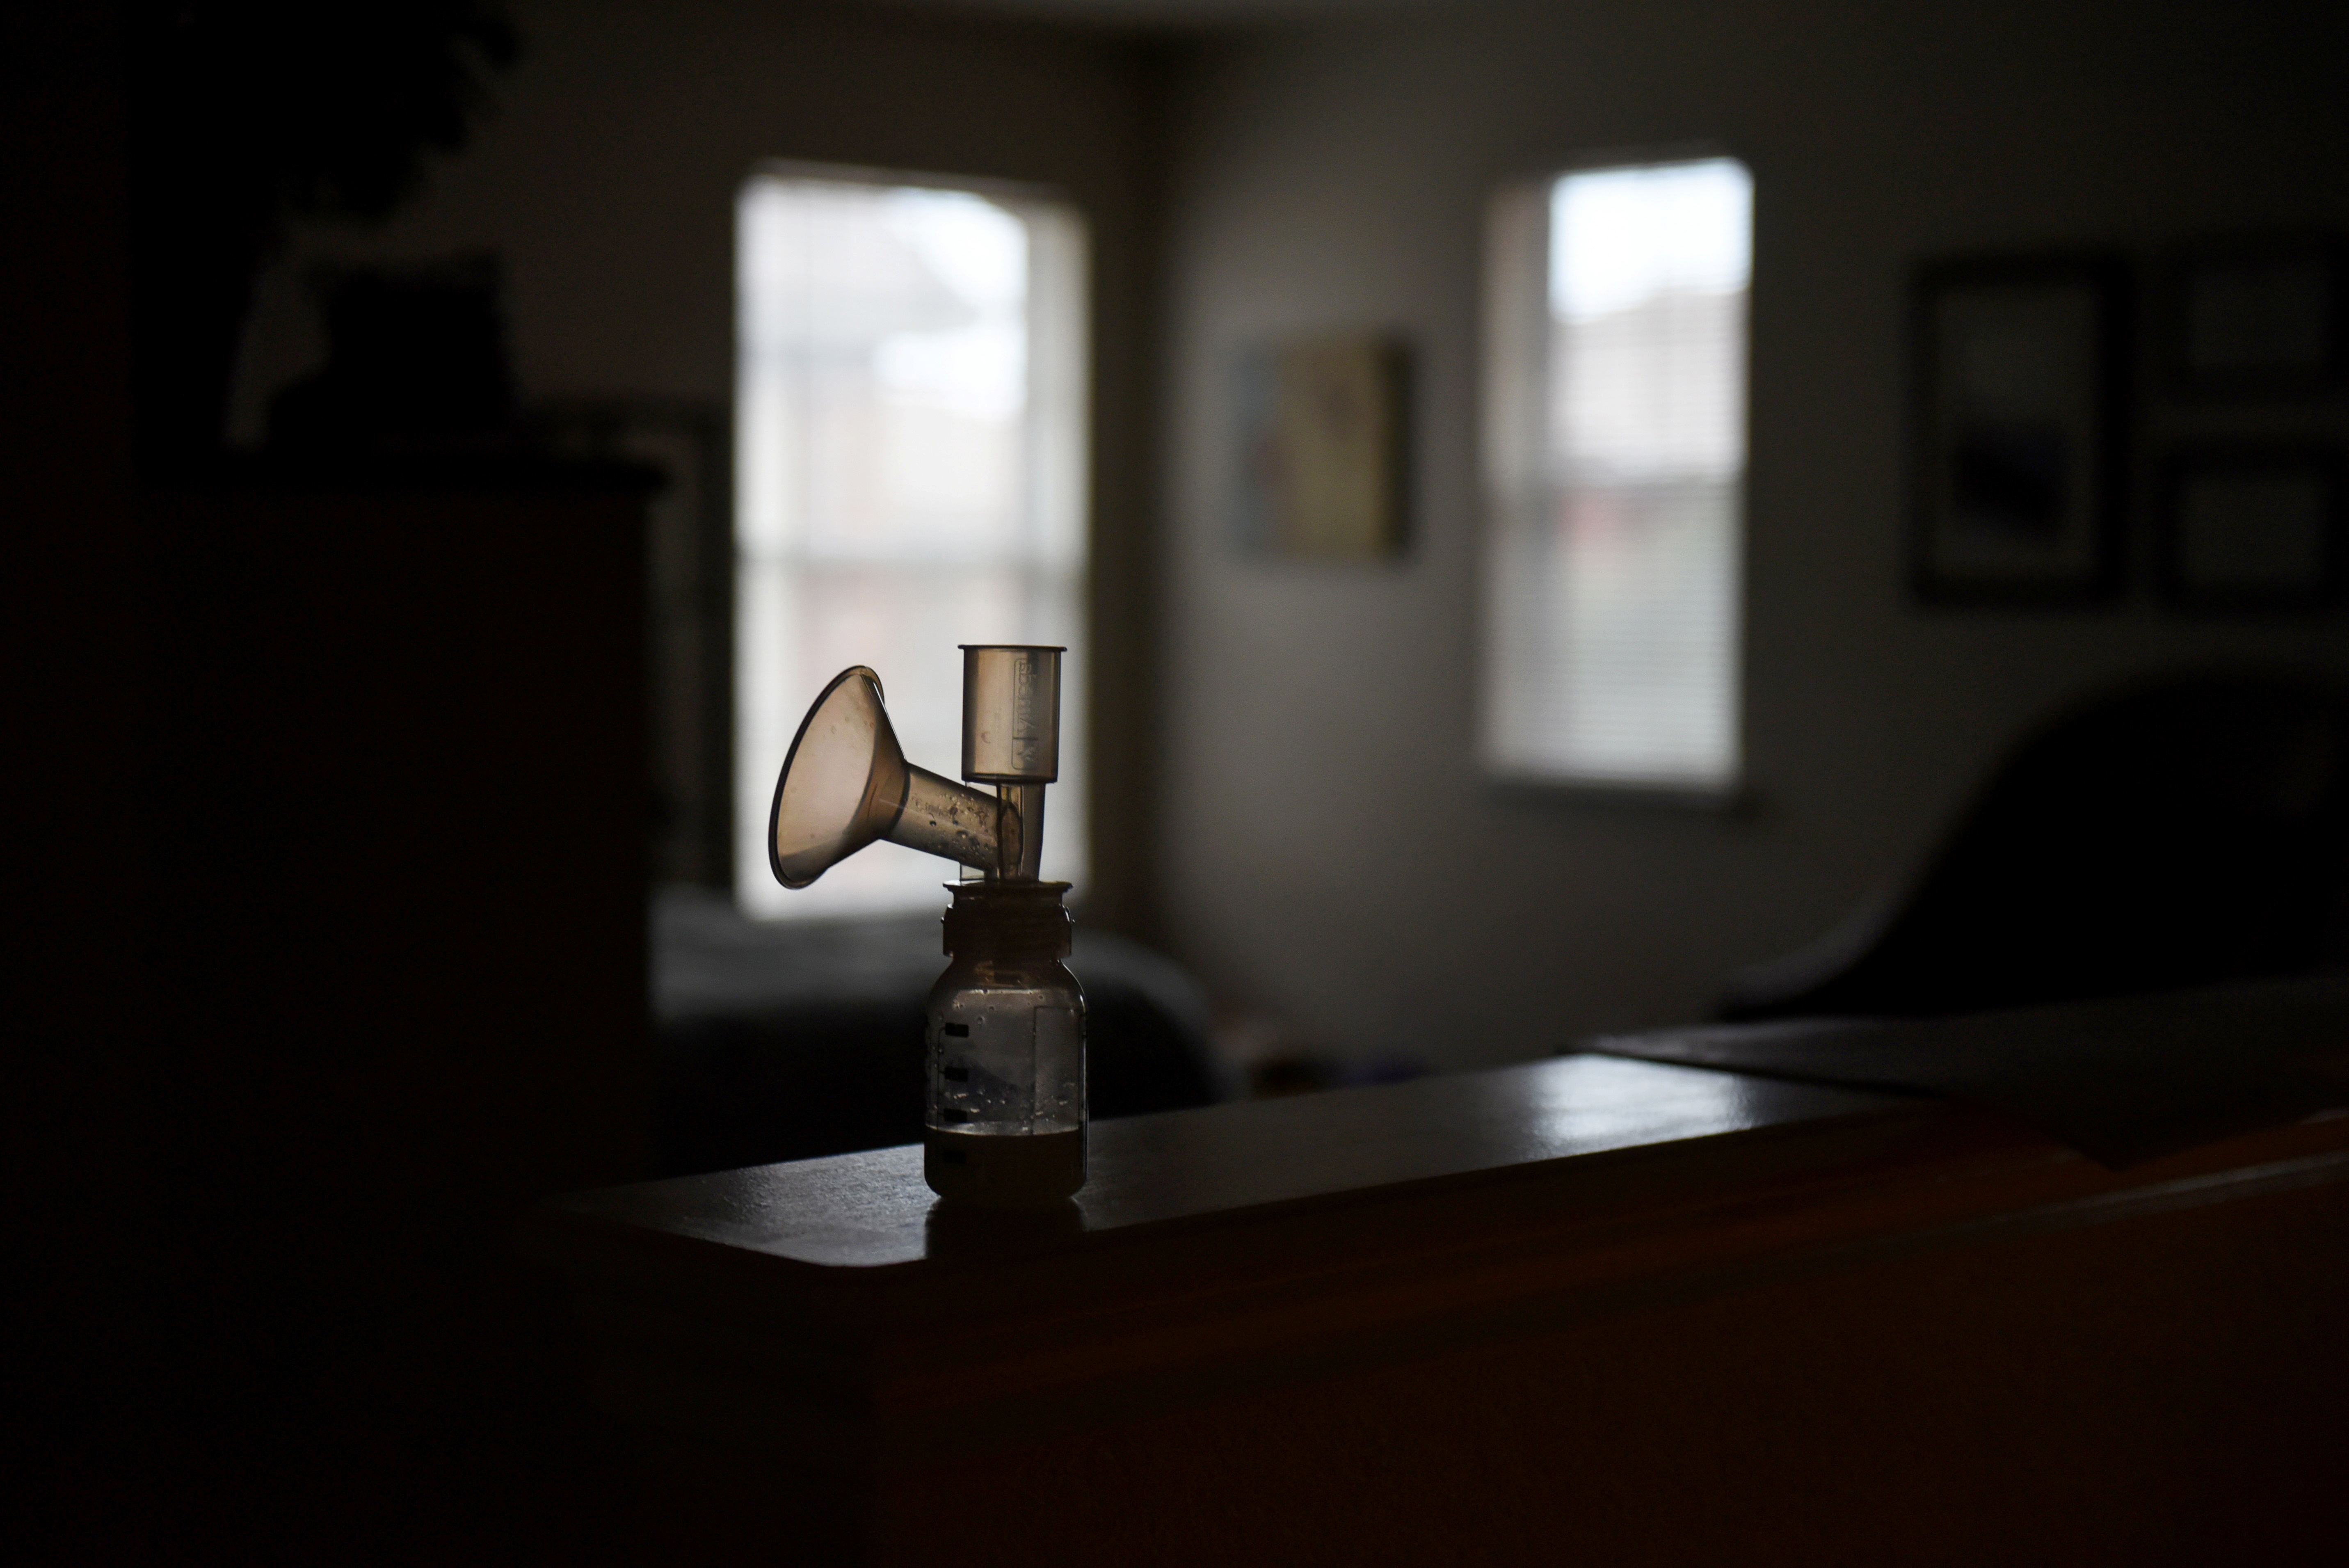 A breast pump is seen in the Hoffmann's home in San Antonio, Texas, U.S., February 8, 2019. REUTERS/Callaghan O'Hare